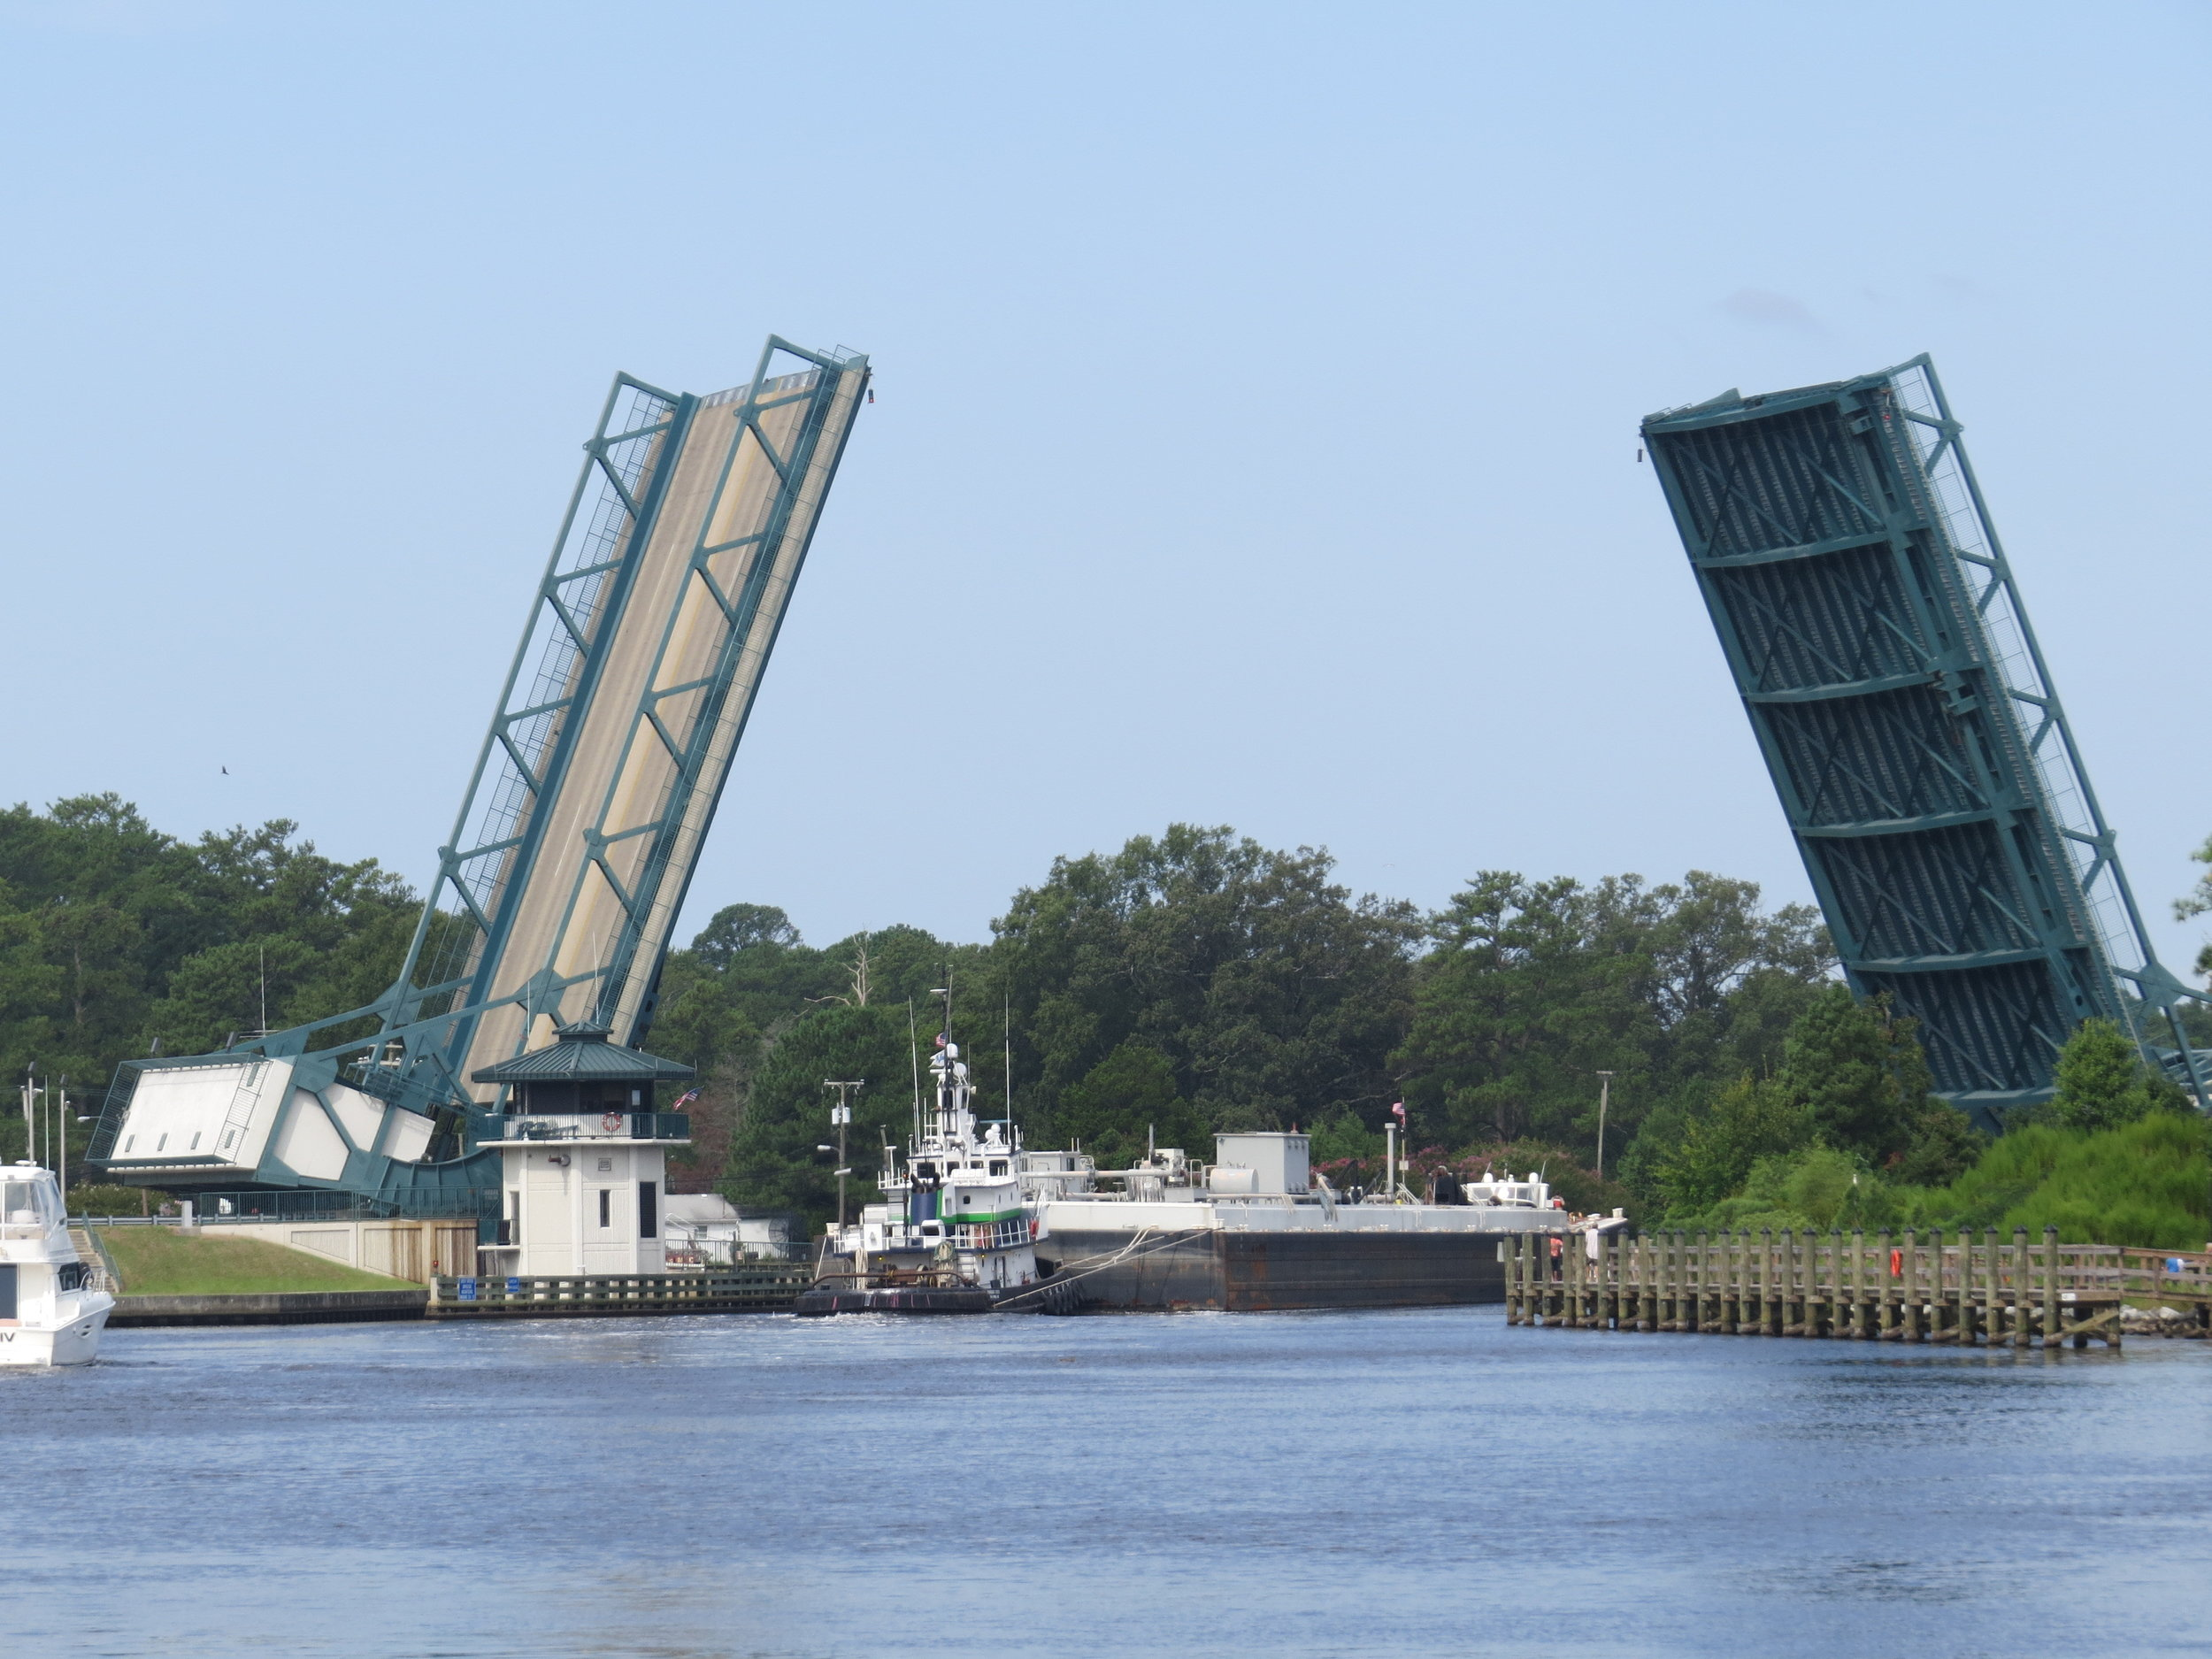 After a recent lightning hit, the Great Bridge Bridge only opens twice a day while repairs are still being made.